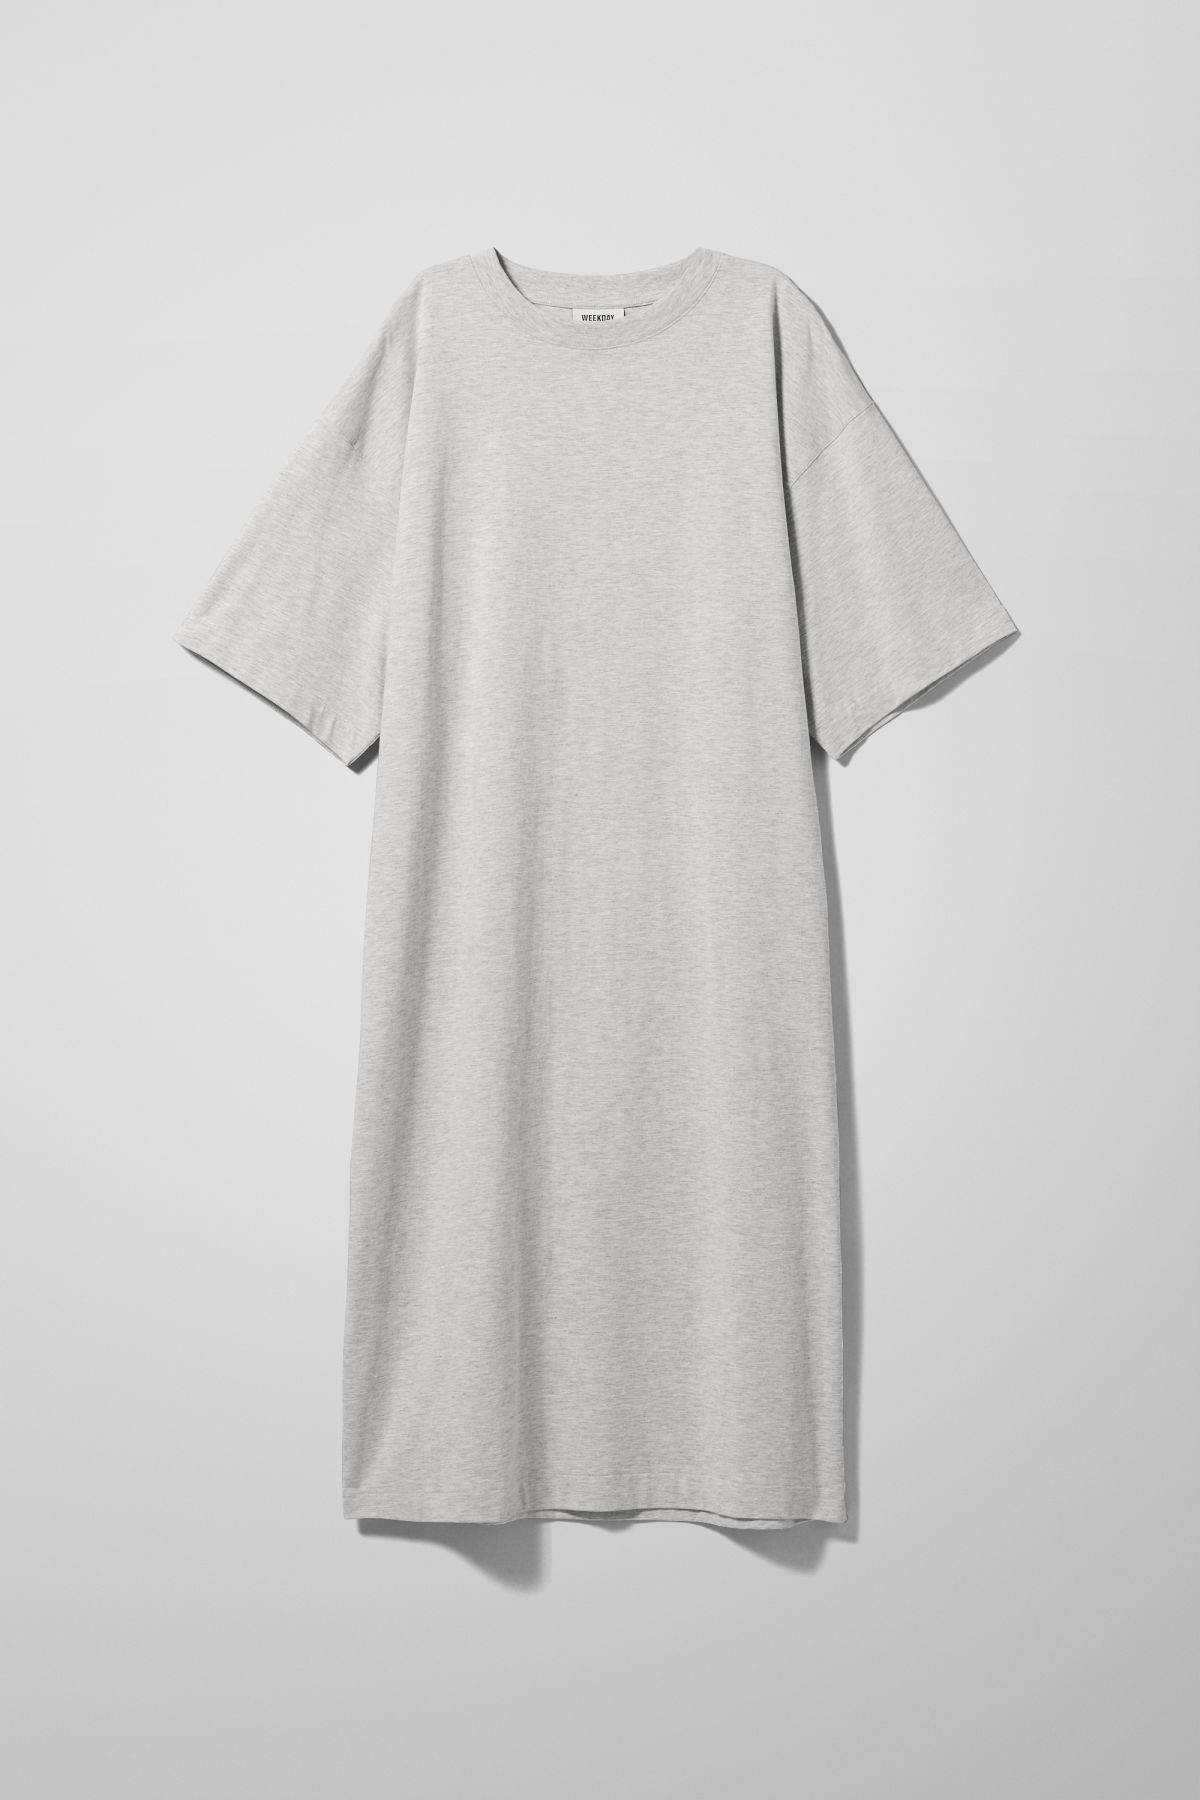 Image of Ines T-Shirt Dress - Grey-L